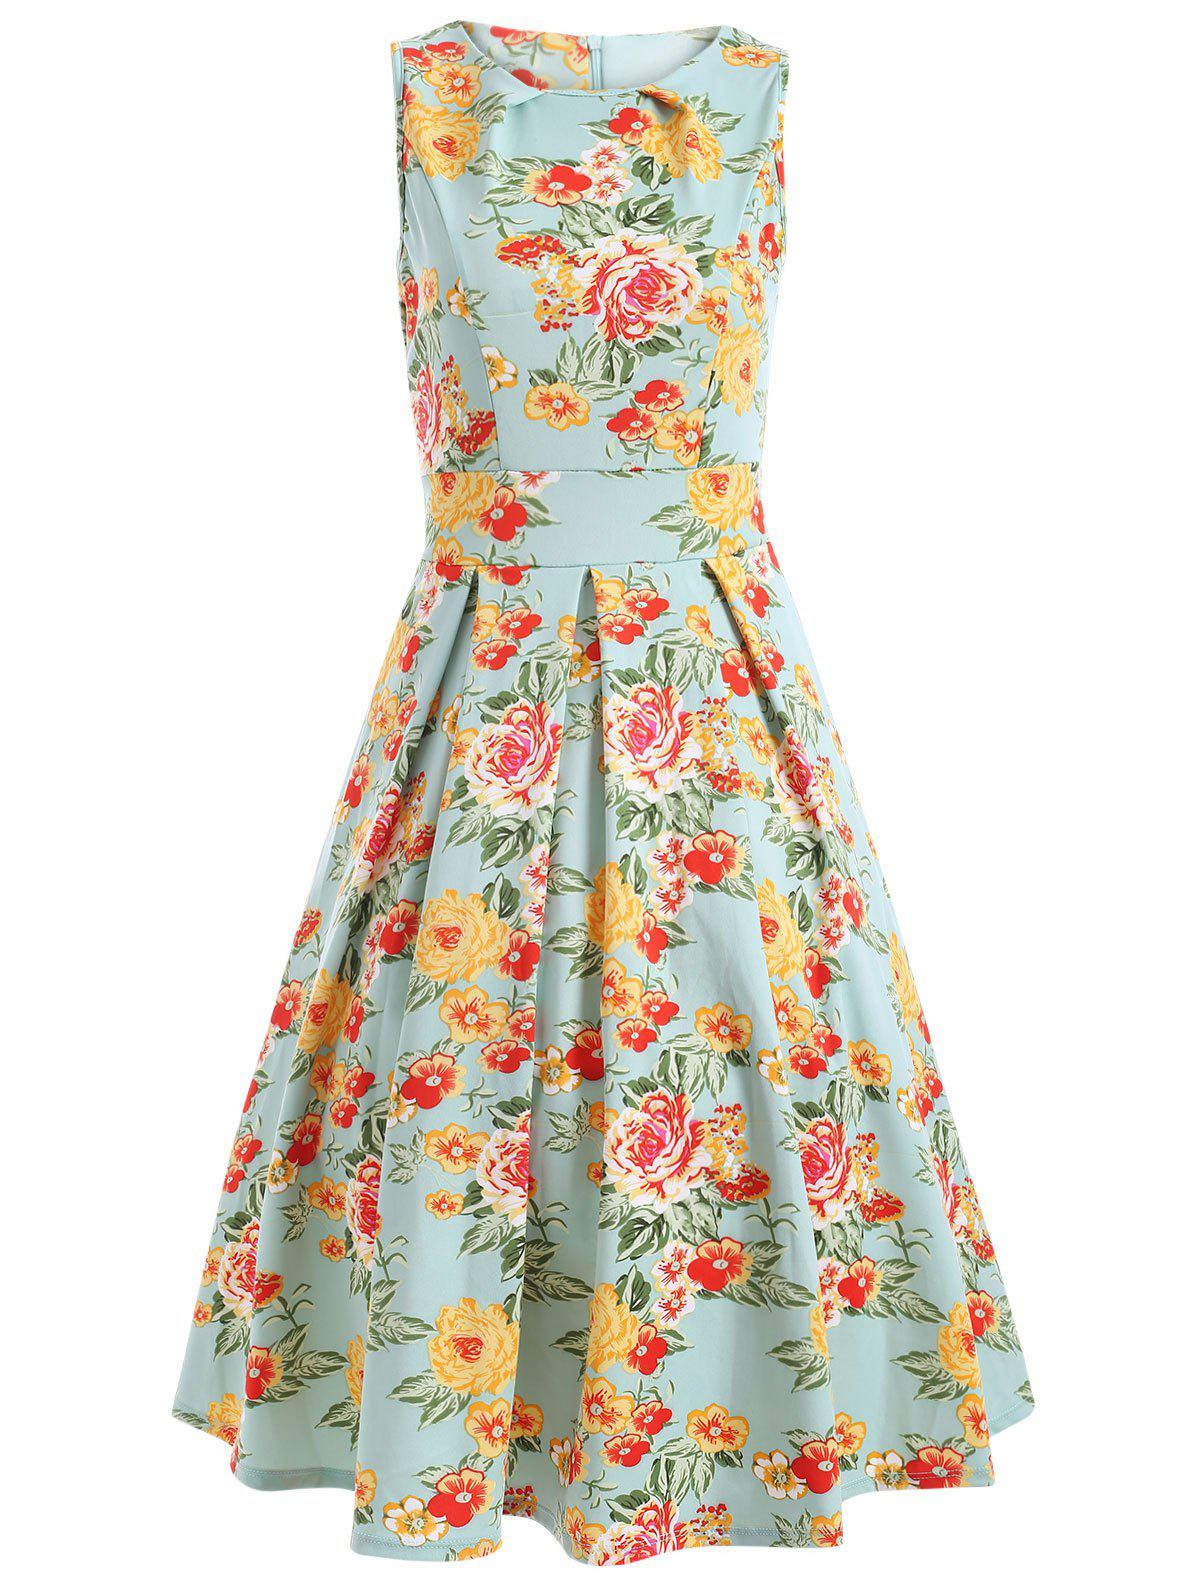 Sleeveless Floral Print A Line Vintage Tea Dress - FLORAL L